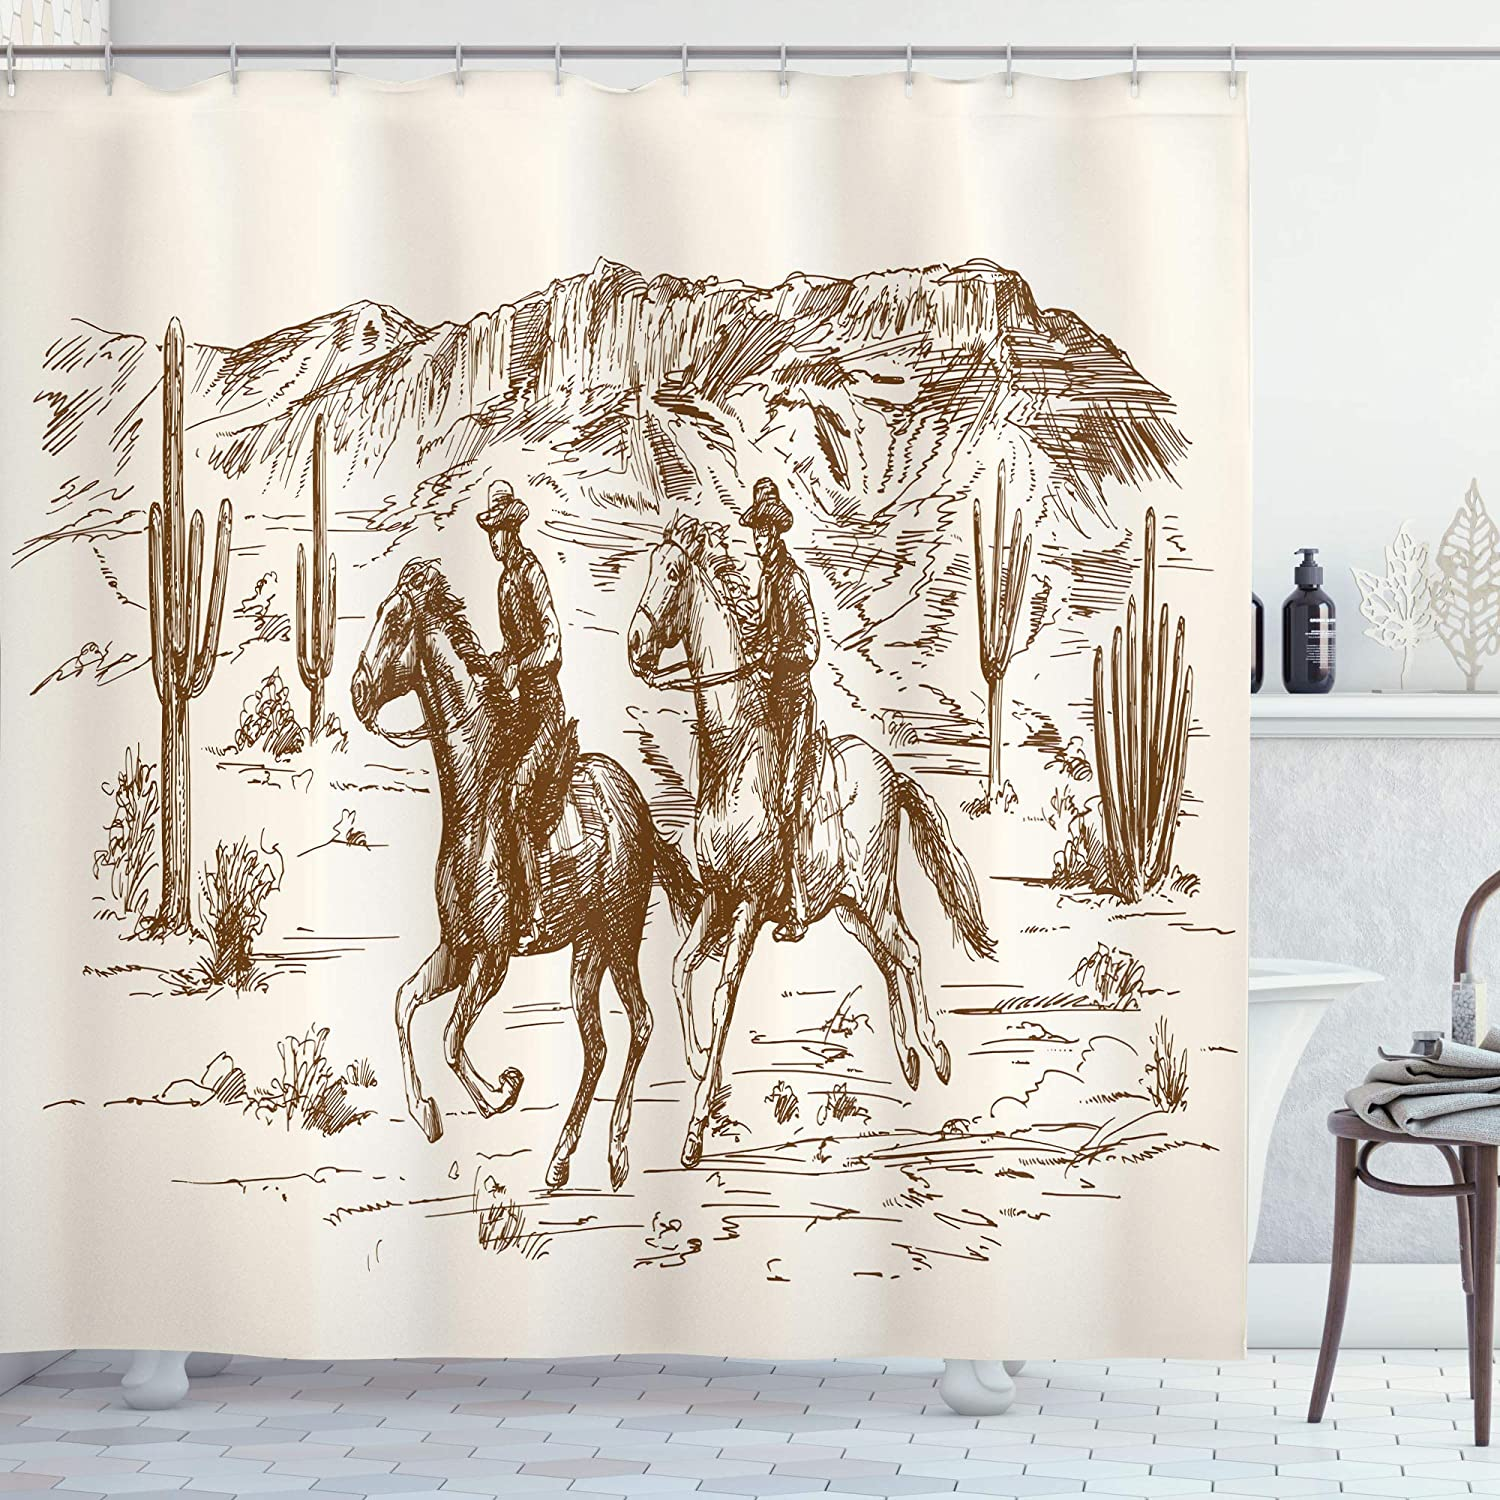 Amazon Com Ambesonne Western Shower Curtain Country Theme Hand Drawn Illustration Of American Wild West Desert With Cowboys Cloth Fabric Bathroom Decor Set With Hooks 70 Long Umber Cream Home Kitchen